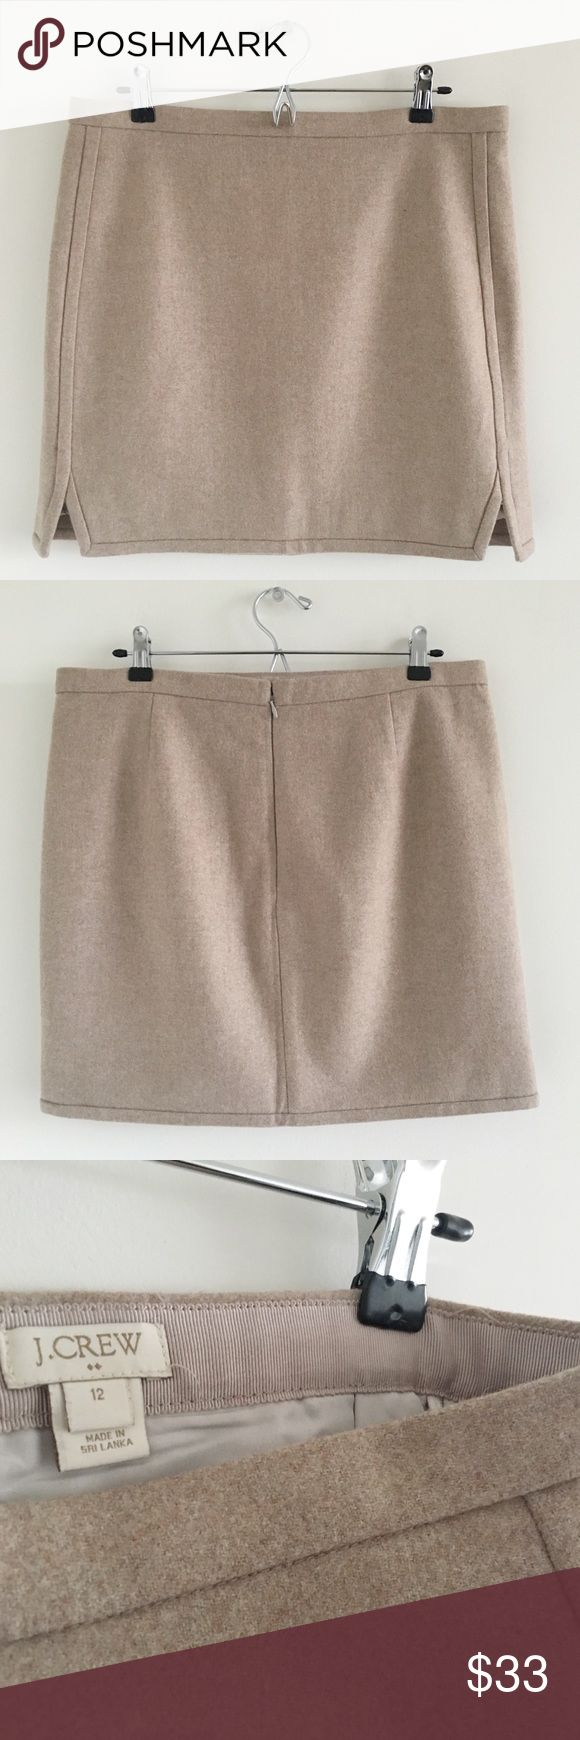 🆕 J. Crew Factory Double-Notch Wool Mini Skirt 12 A super cute, oatmeal-colored wool skirt that would be perfect as part of a preppy work look.  Stats (laying flat): Length: approx. 18"